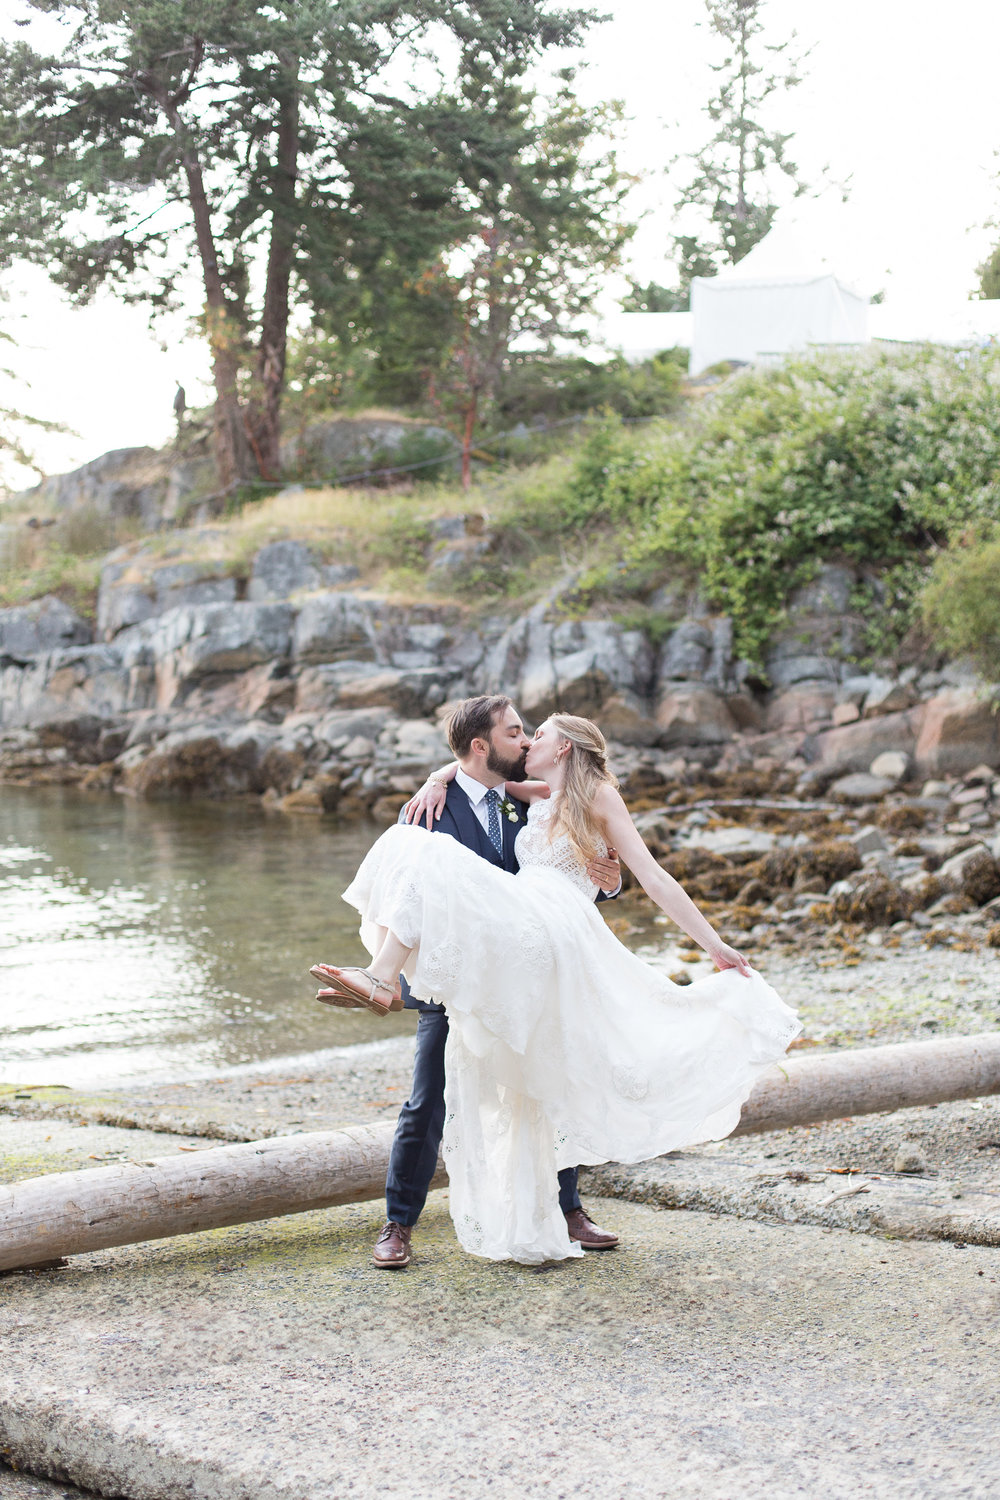 bc-weddings-rockwater-darcy-steffi.jpg